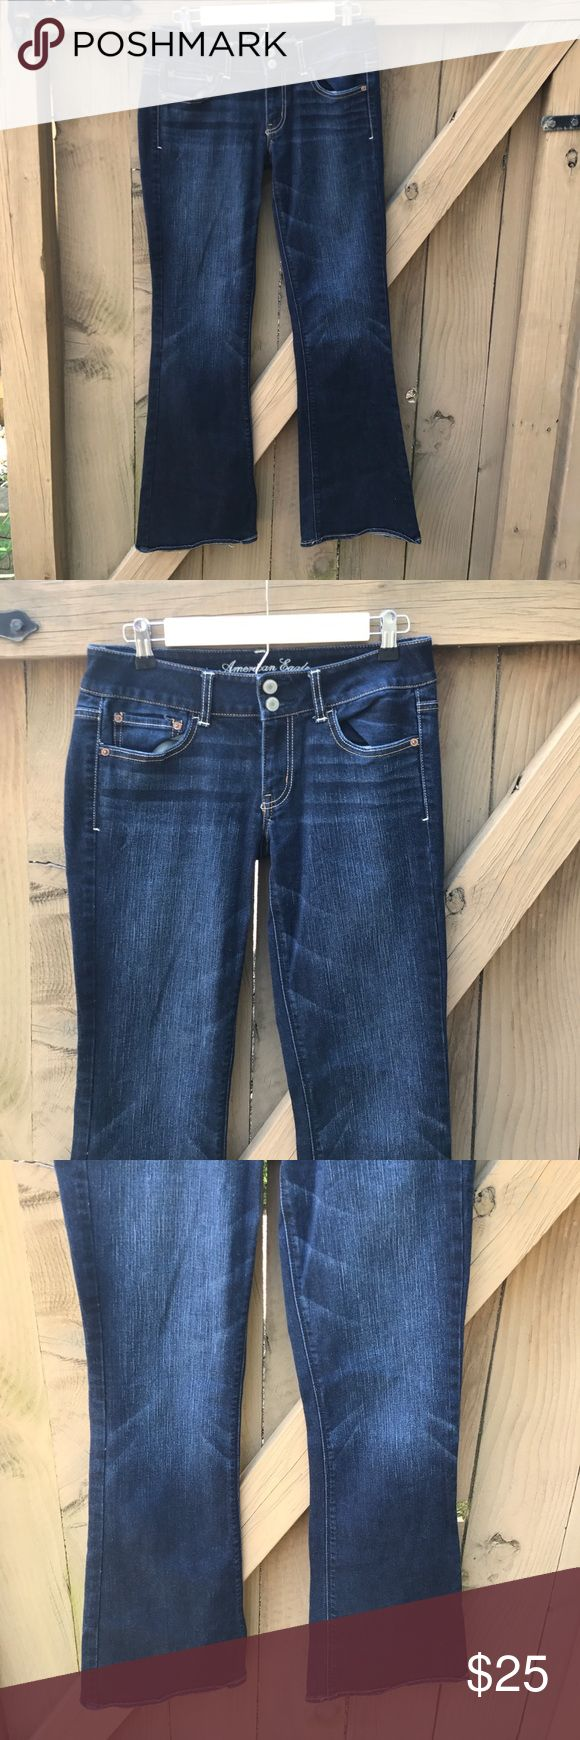 American Eagle size 8 regular artist jeans American Eagle size 8 regular artist jeans: location: B3 American Eagle Outfitters Jeans Boot Cut